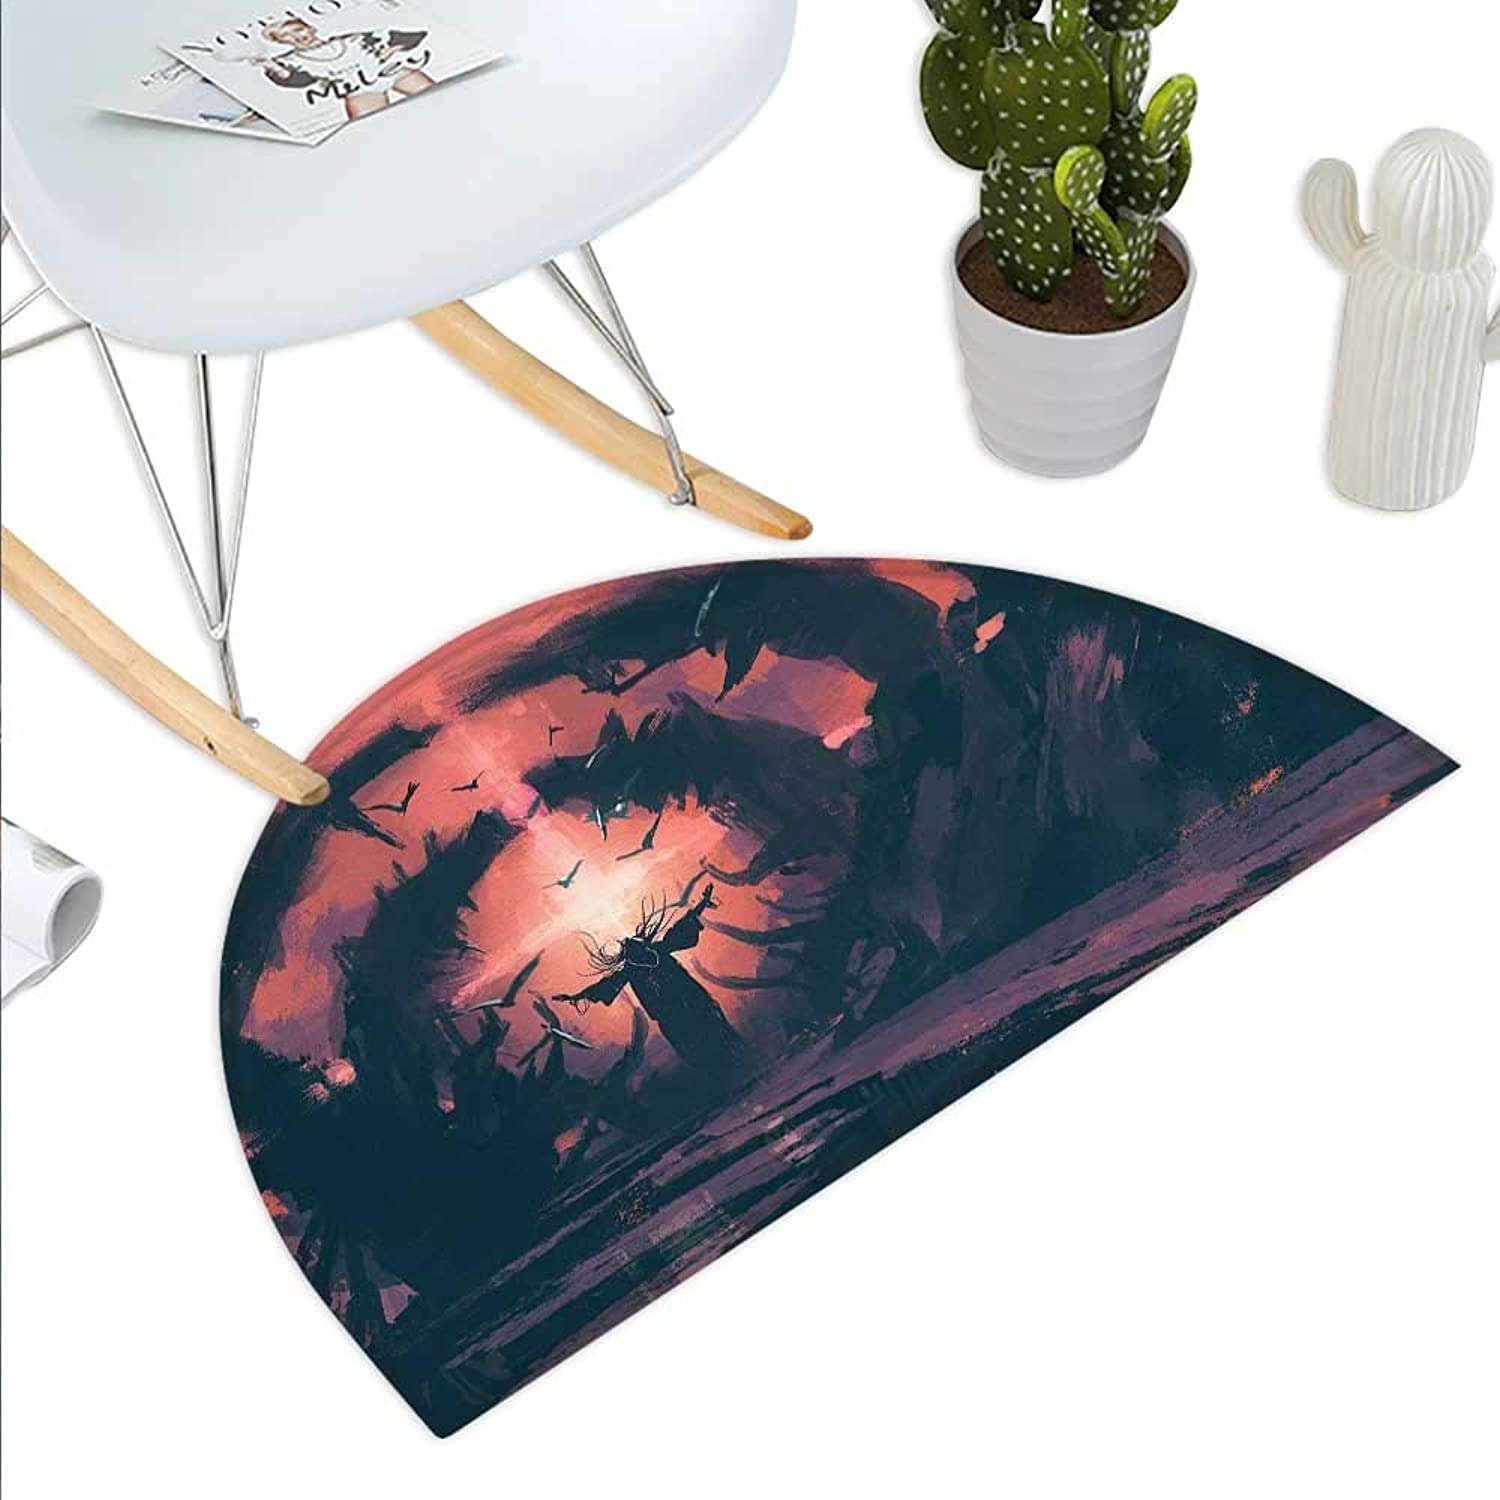 Fantasy Semicircle Doormat an Old Wizard Casting a Spell in The Wizarding Lair Painting Style Design Halfmoon doormats H 39.3  xD 59  Salmon Fuchsia Black